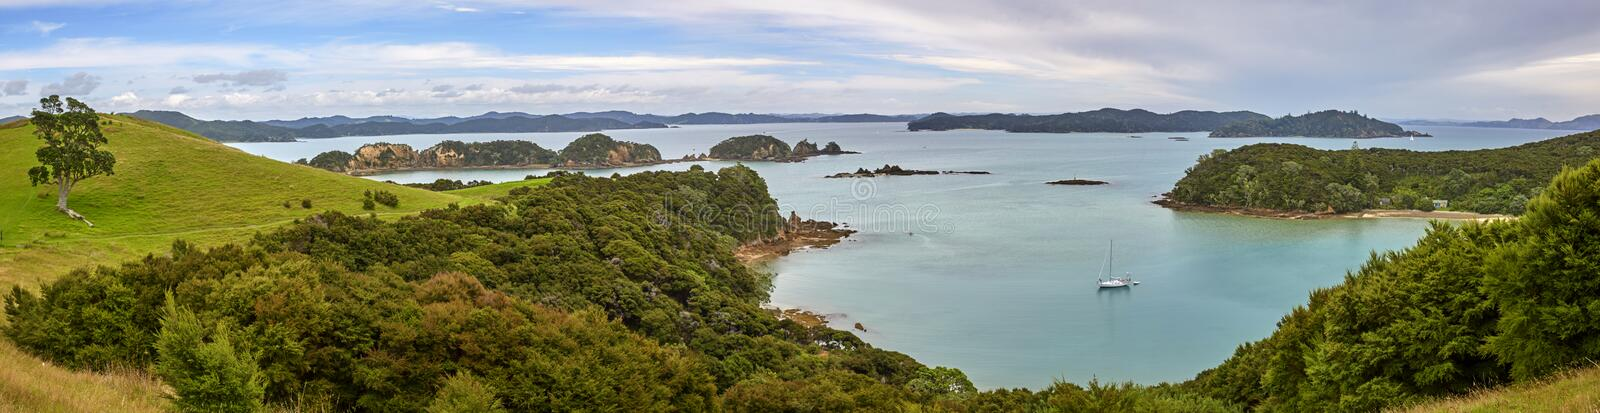 Bay of Islands New Zealand. Panoramic view from Urupukapuka Island in the Bay of Islands New Zealand stock photo